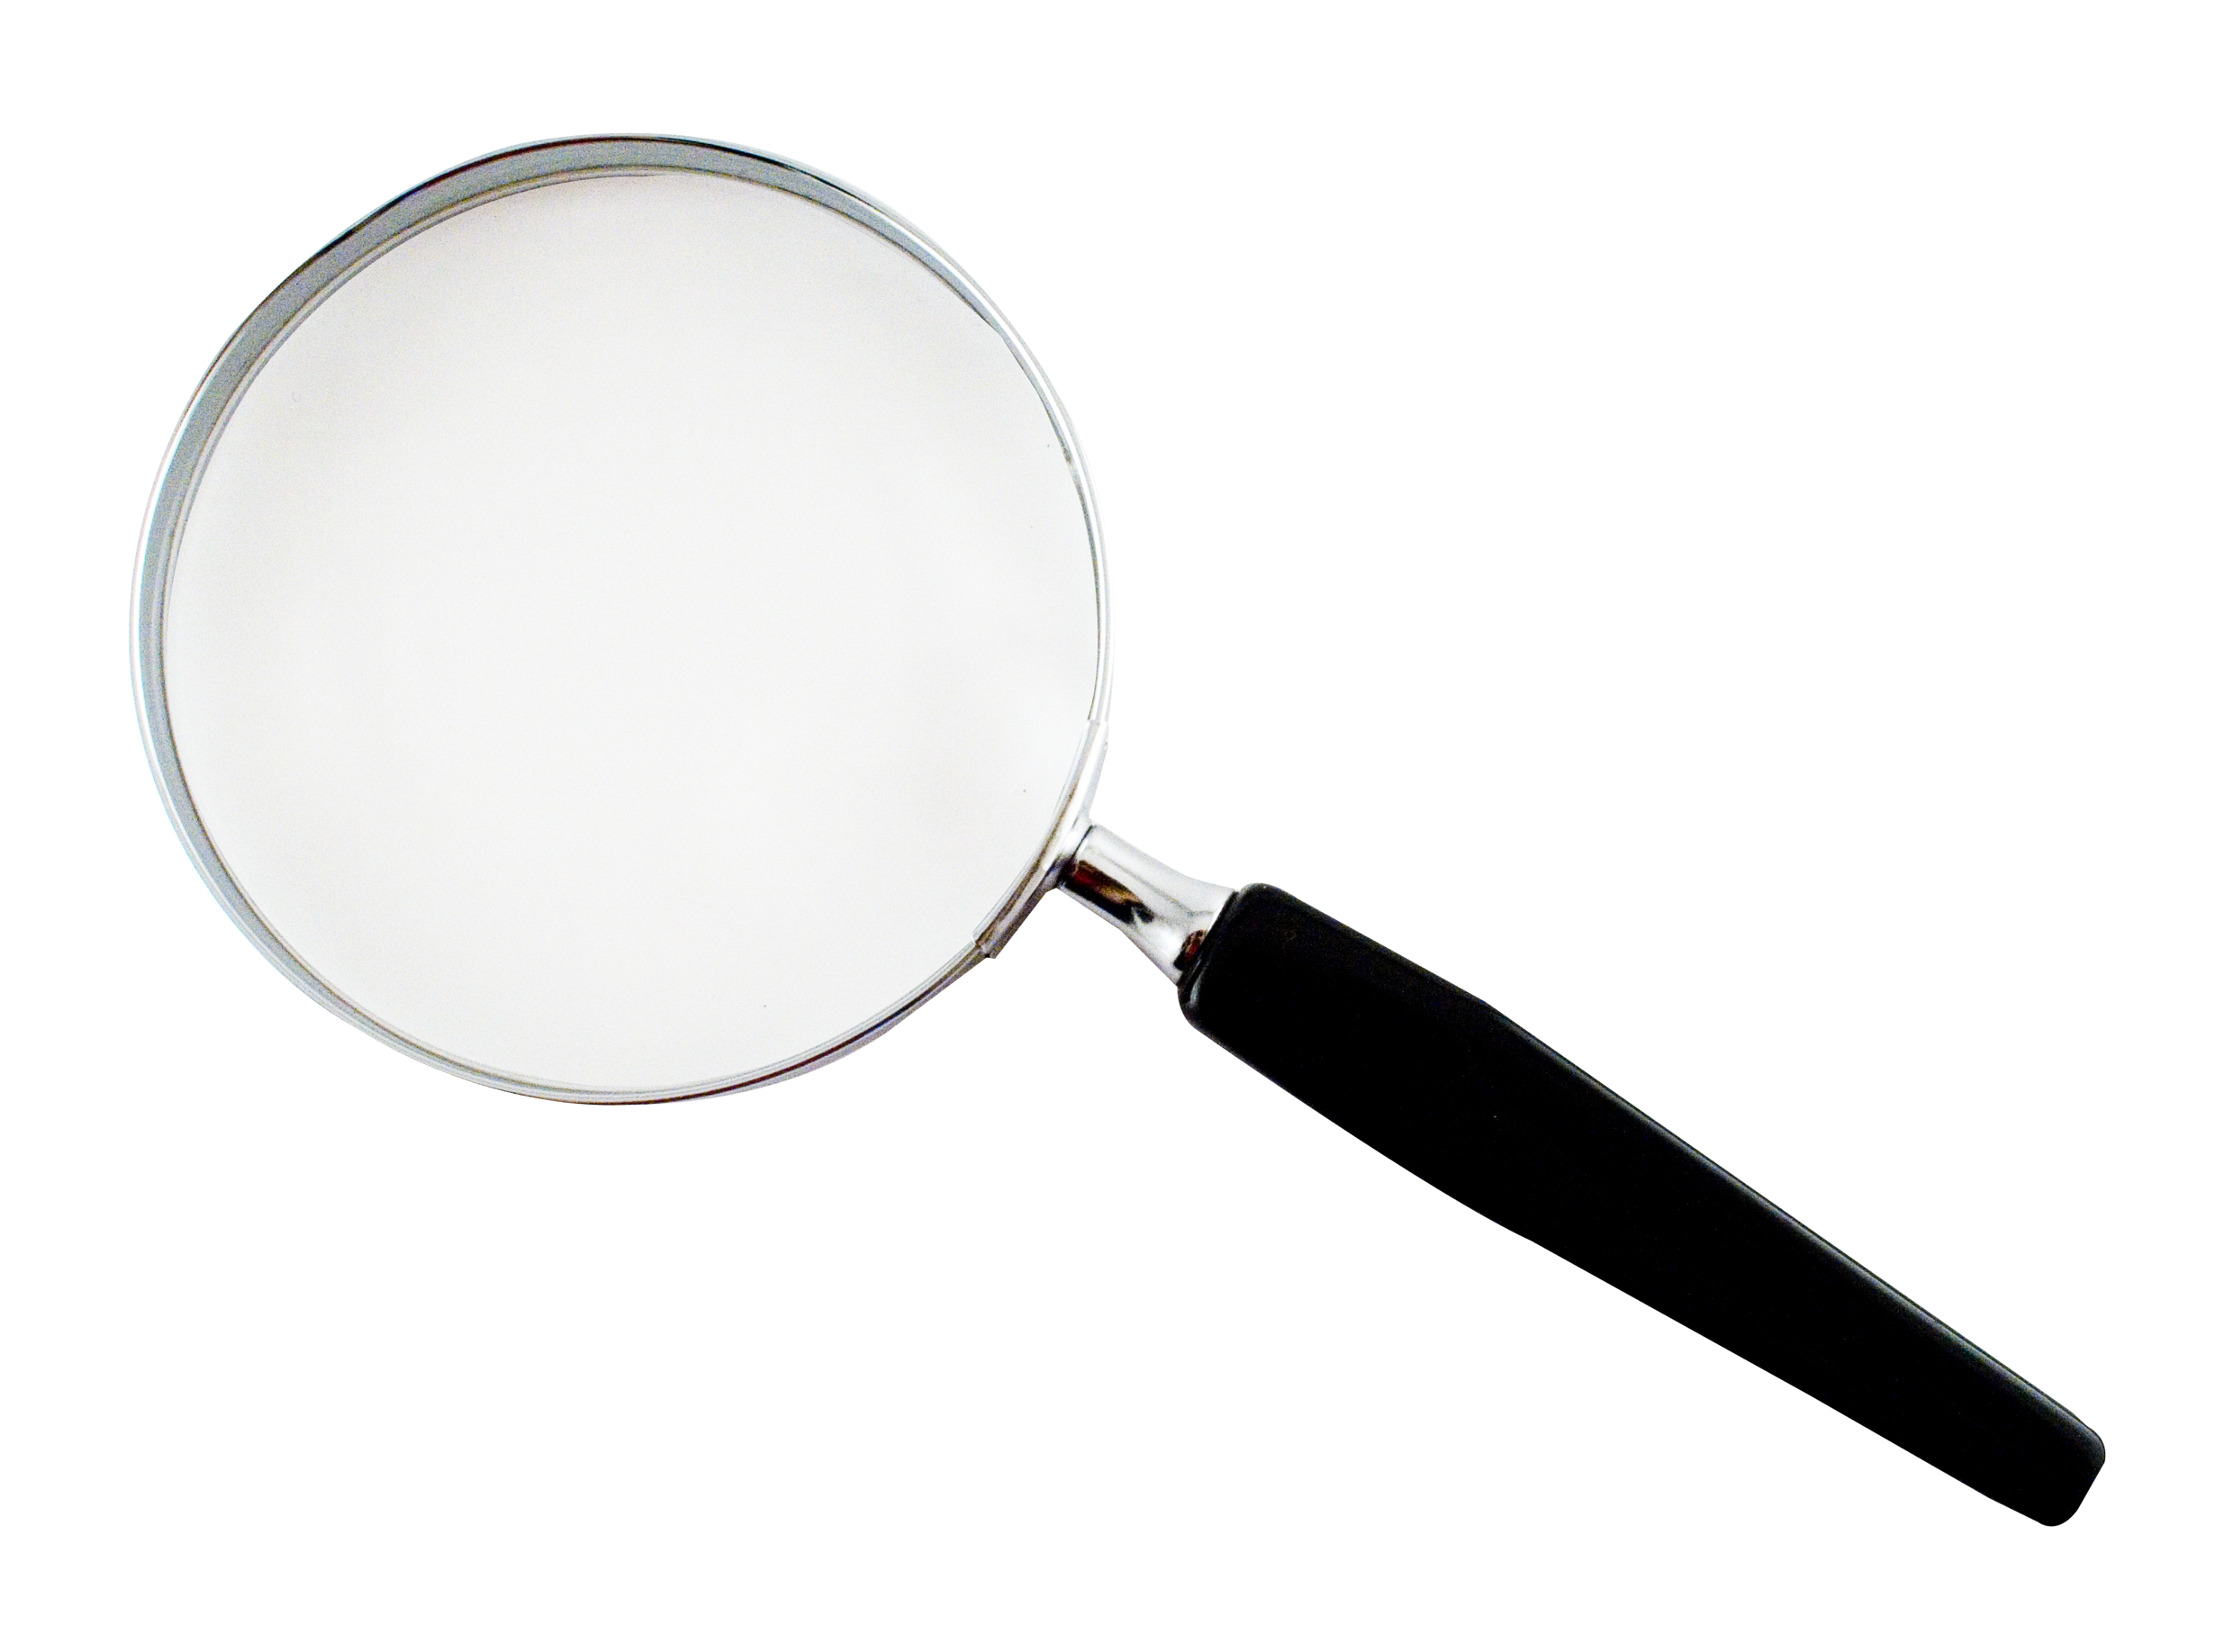 Magnifying HD PNG - 93285